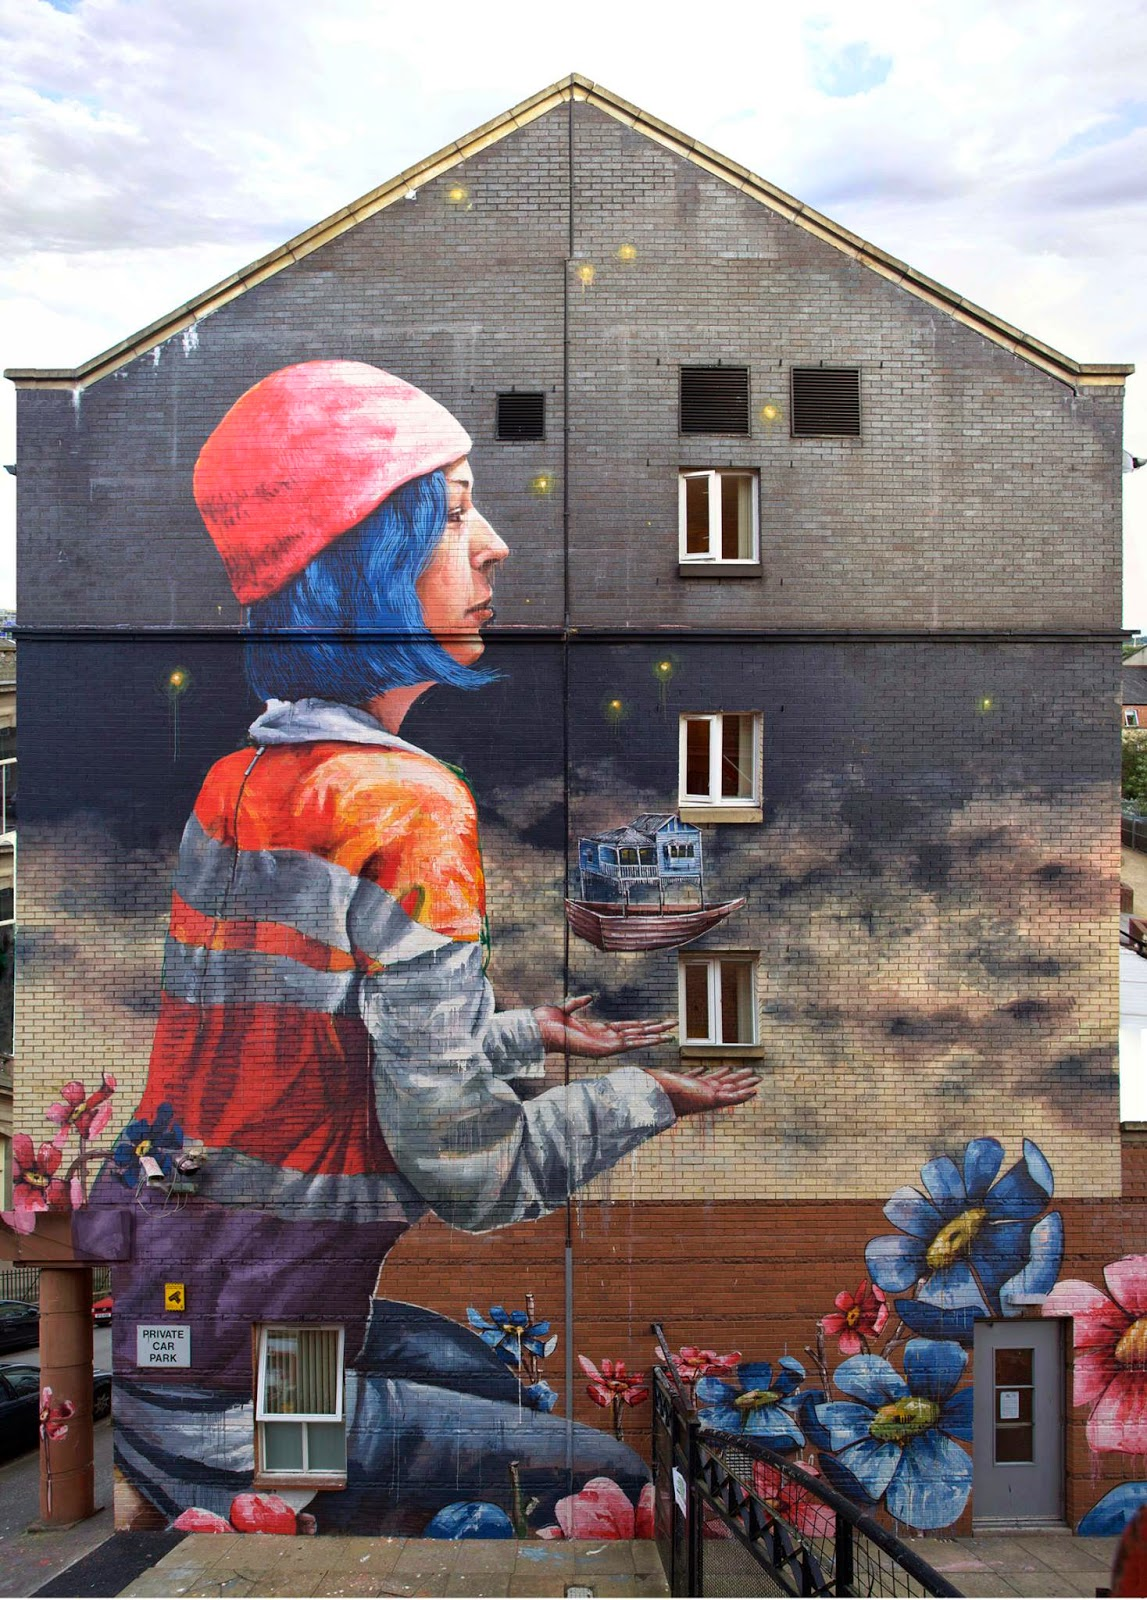 Fintan Magee recently stopped by the city of Glasgow where he was invited for the In Common Street Art Festival.